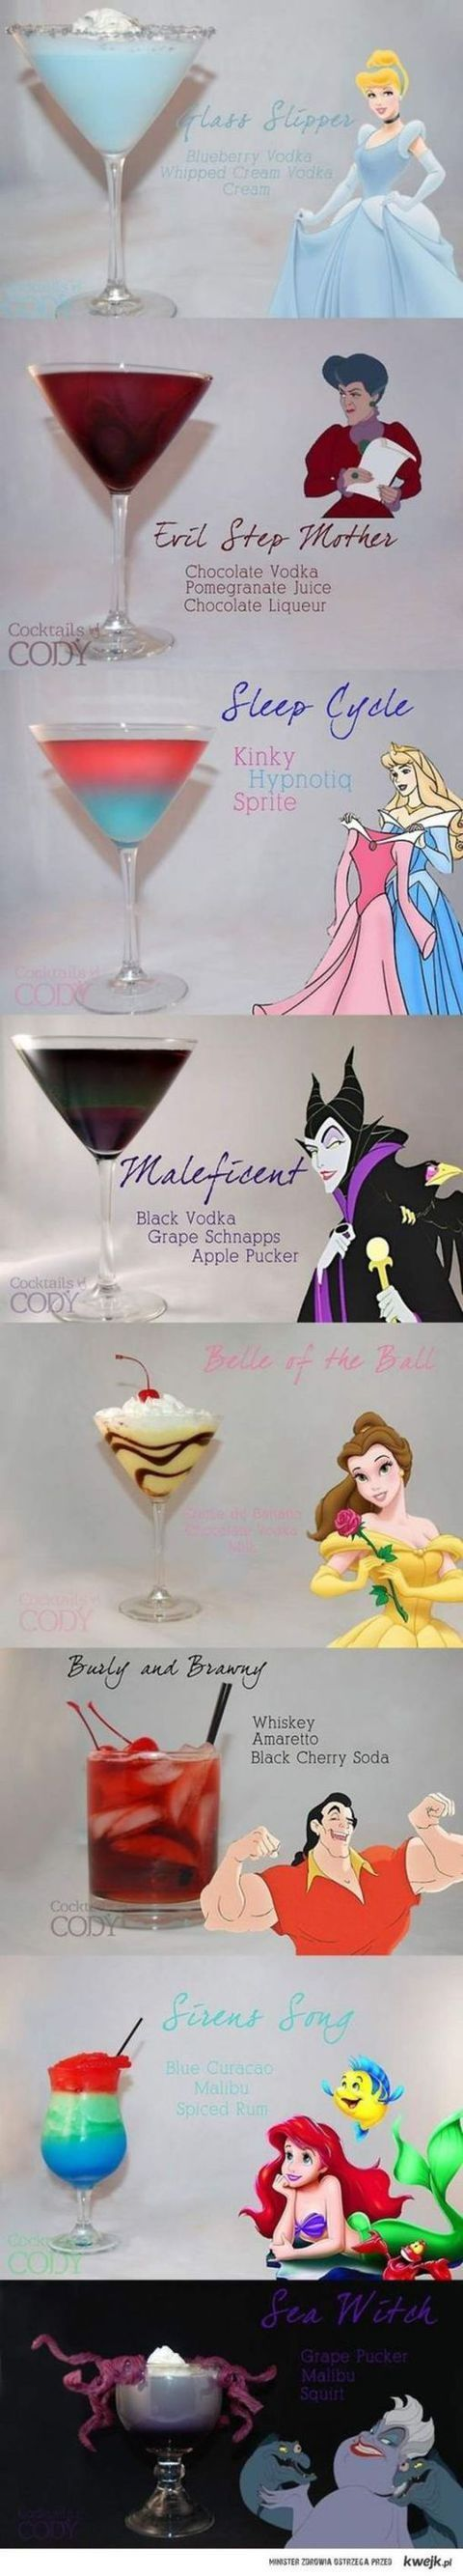 Disney Drinks! @Susie Walsh @Jennifer Verissimo Triplett can we PLEASE make these at our next dinner!